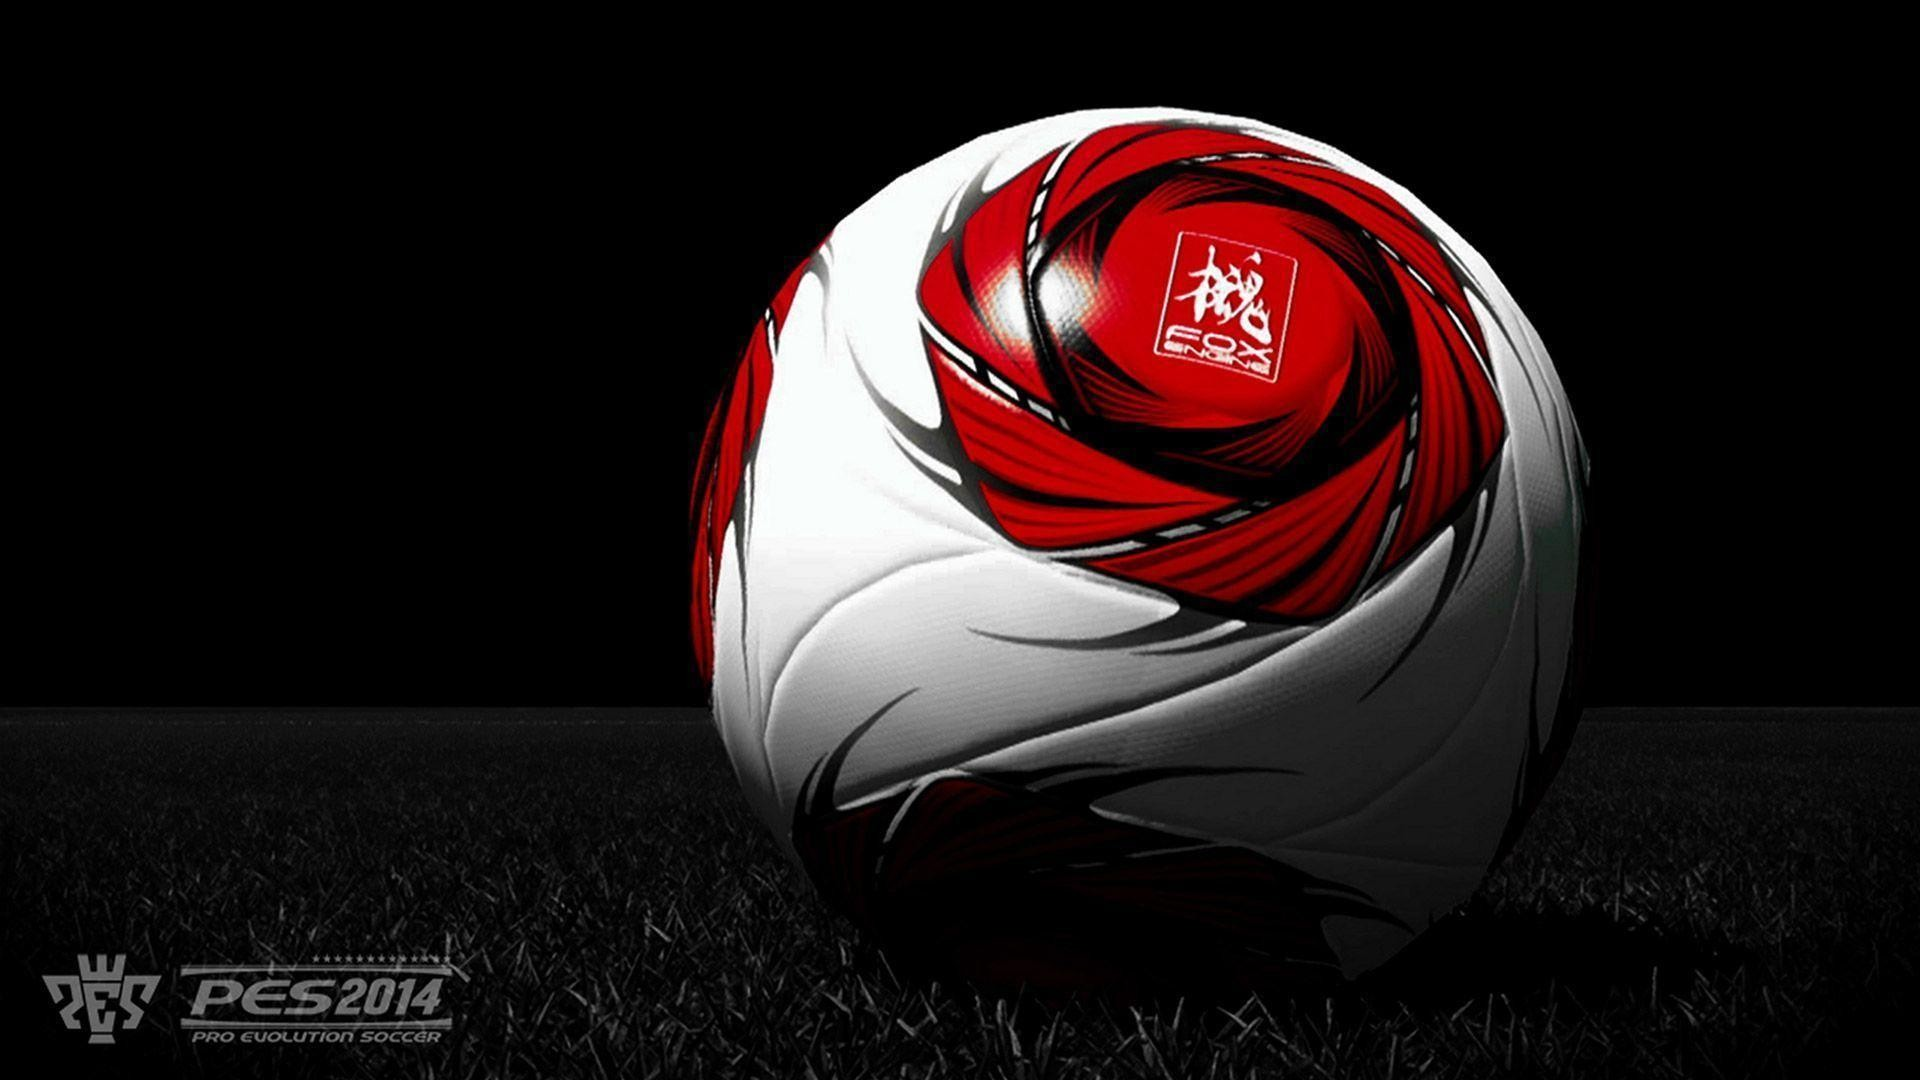 1920x1080 Nike Soccer Ball Wallpaper Hd Cool 7 HD Wallpapers | amagico.